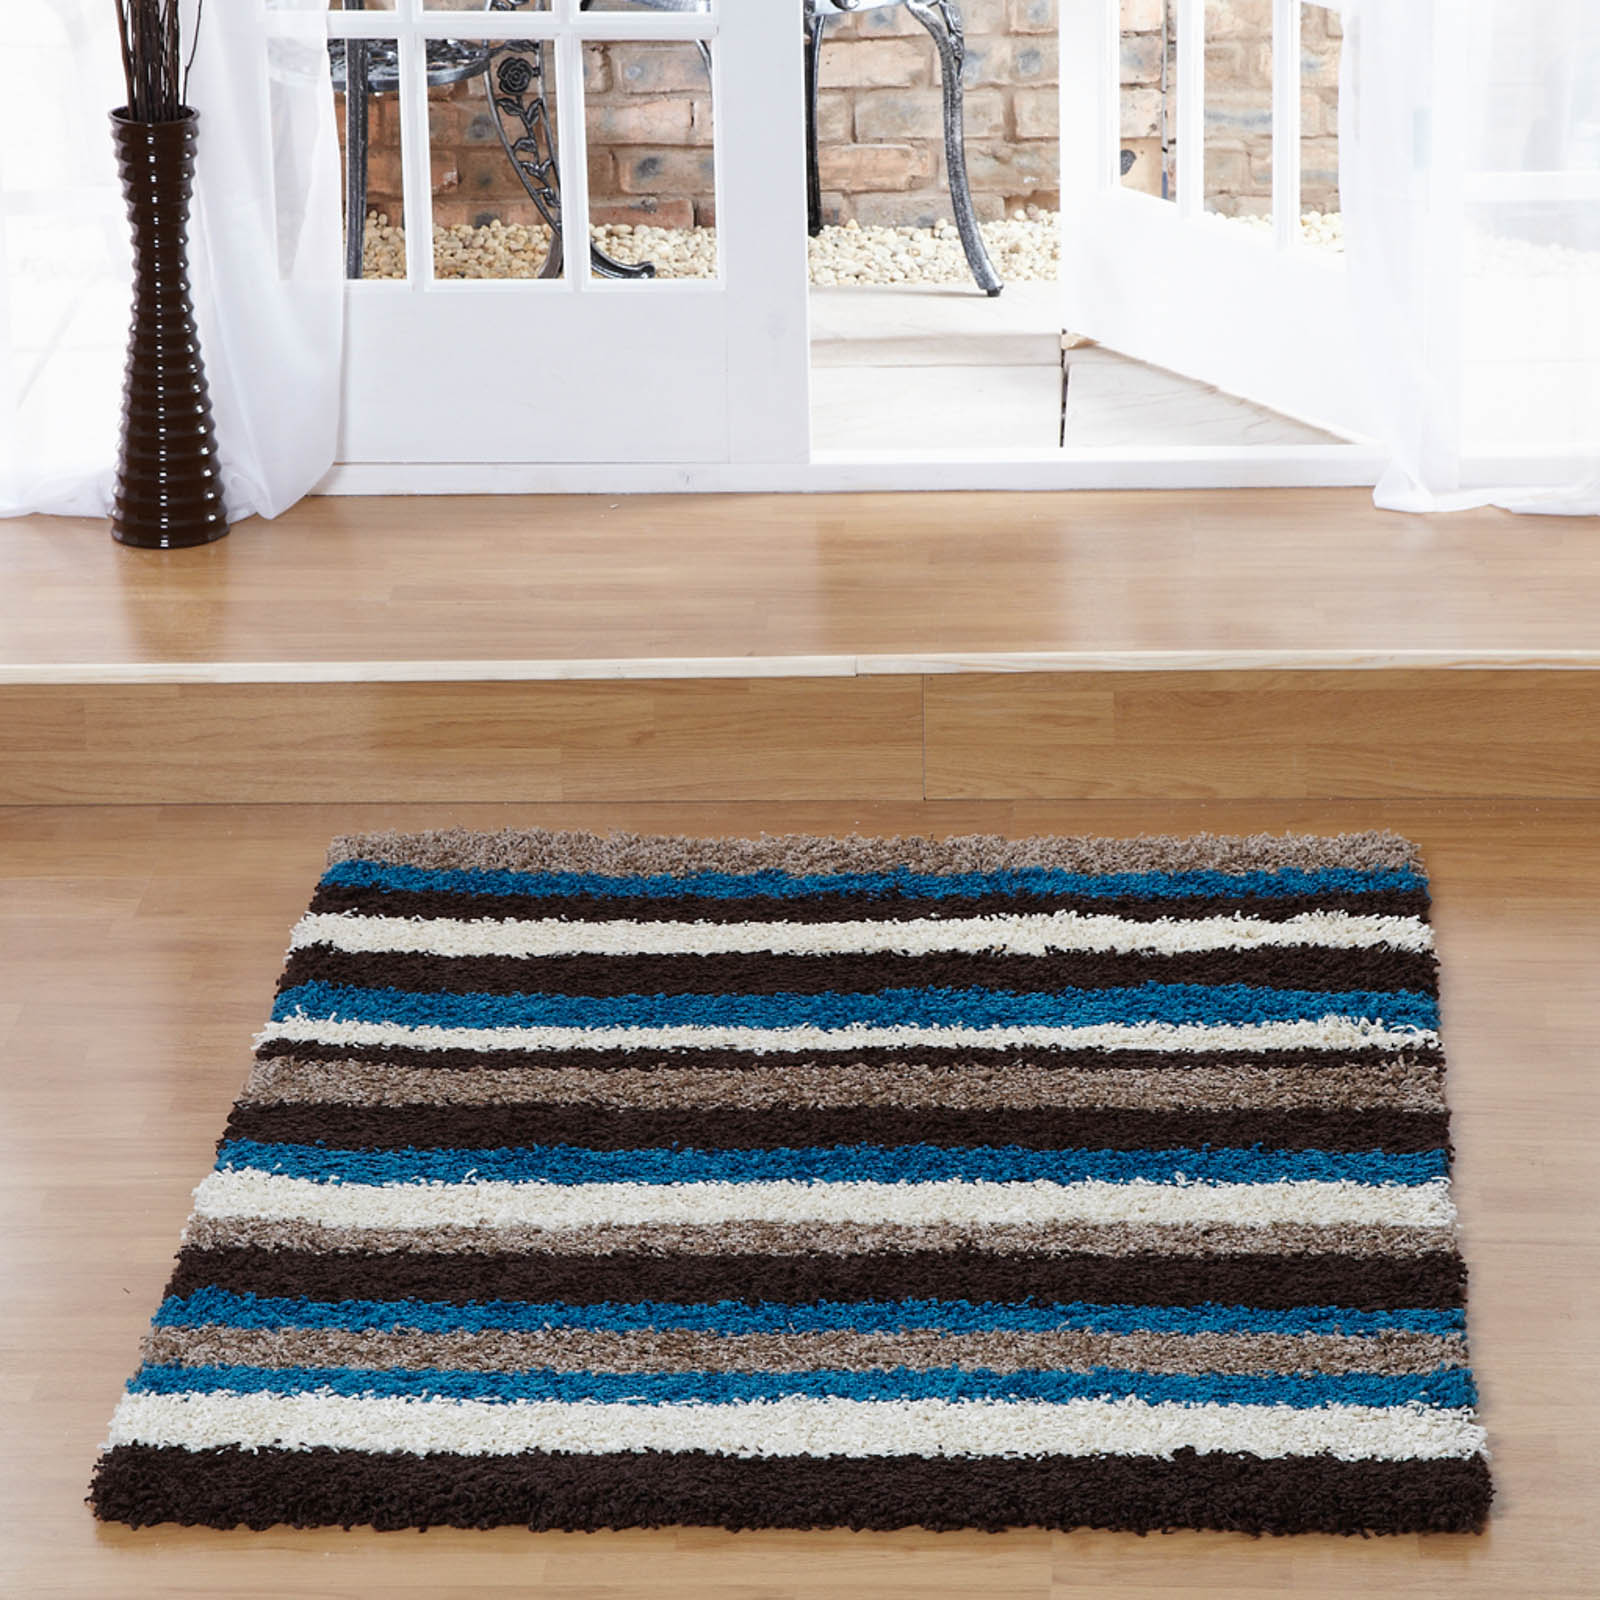 Sienna Stripe Shaggy Rugs in Chocolate and Blue